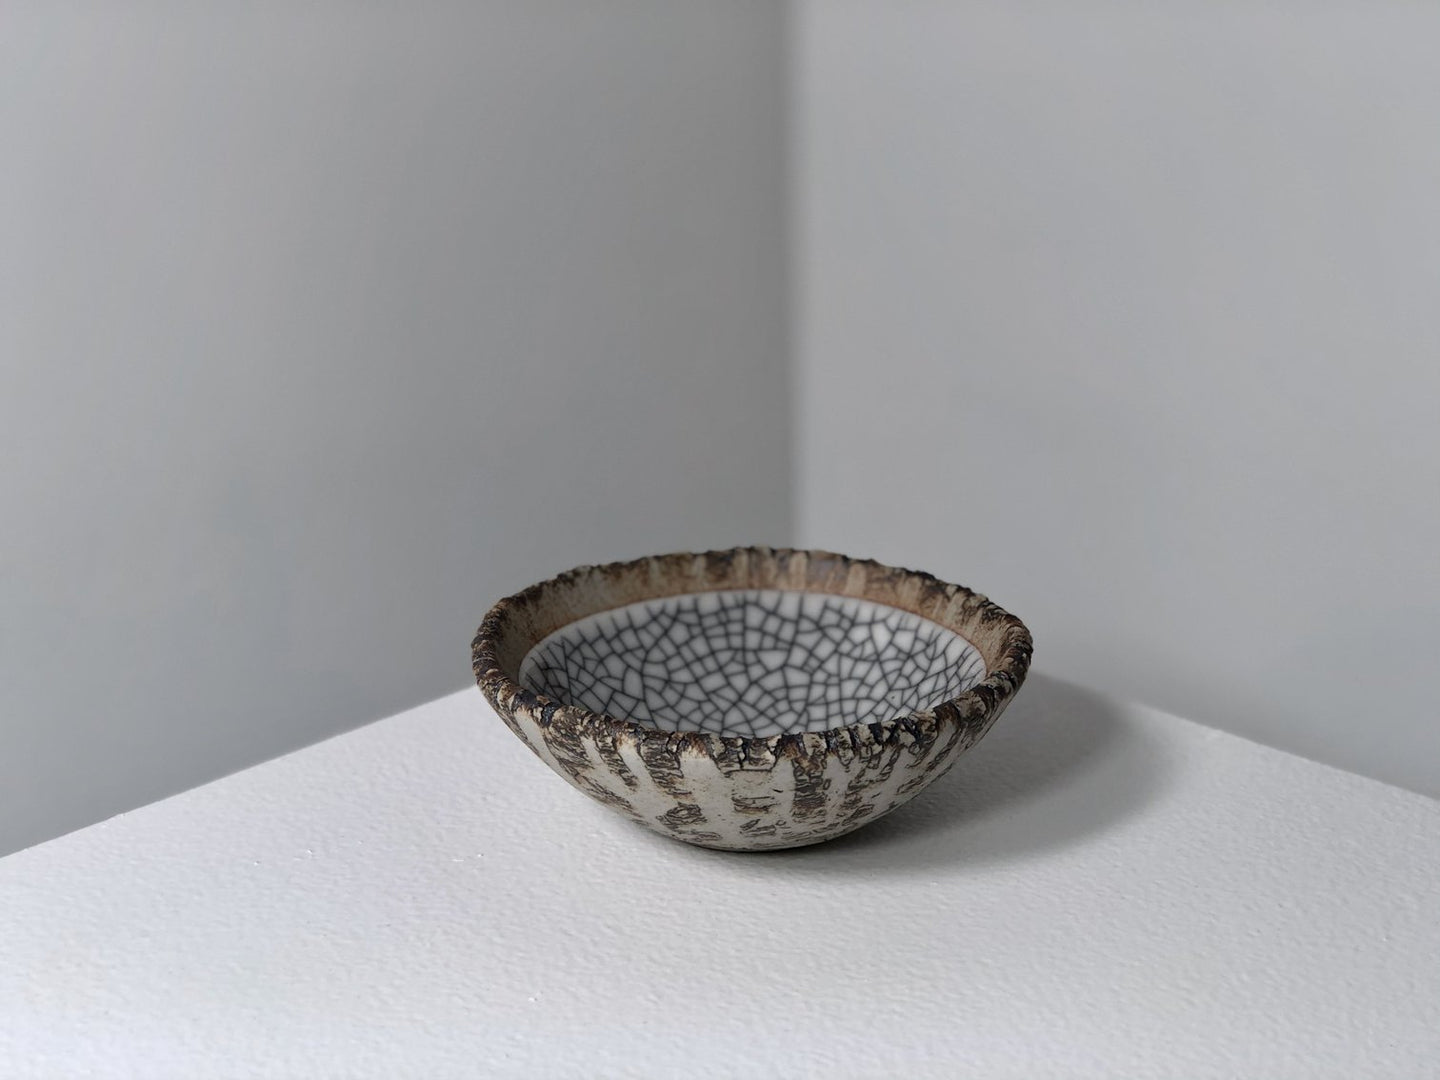 Crickhollow by Rynne Tanton small crackle bowl in monochrome